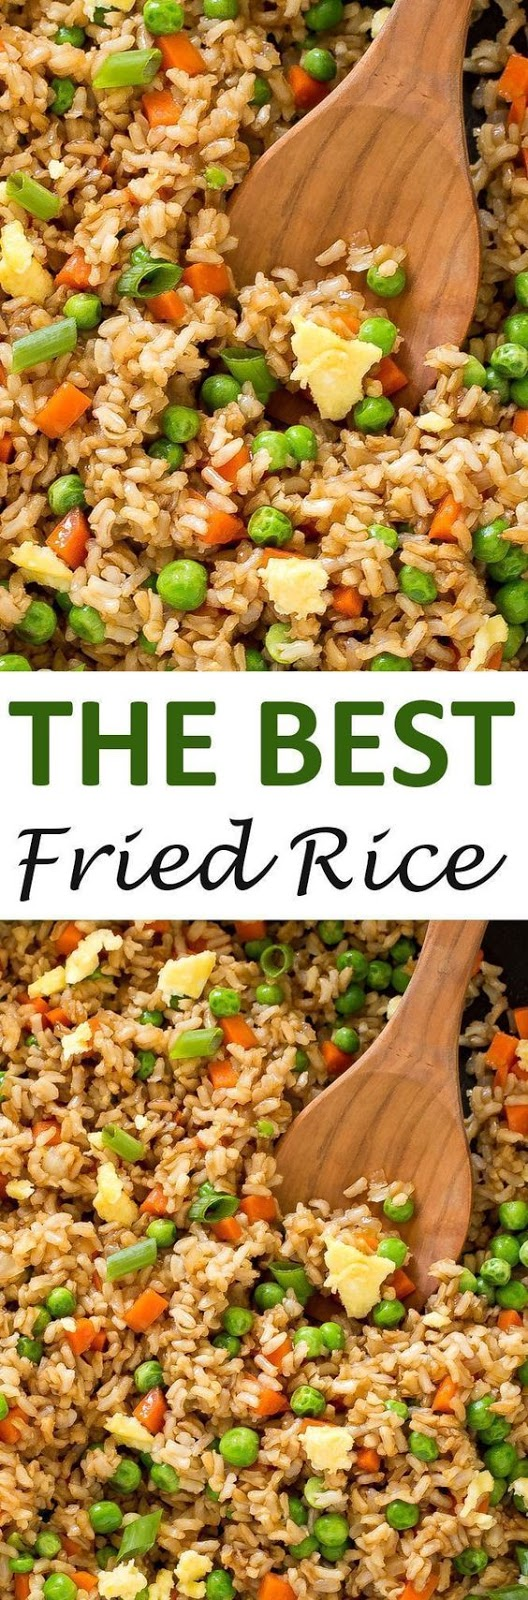 THE BEST FRIED RICE